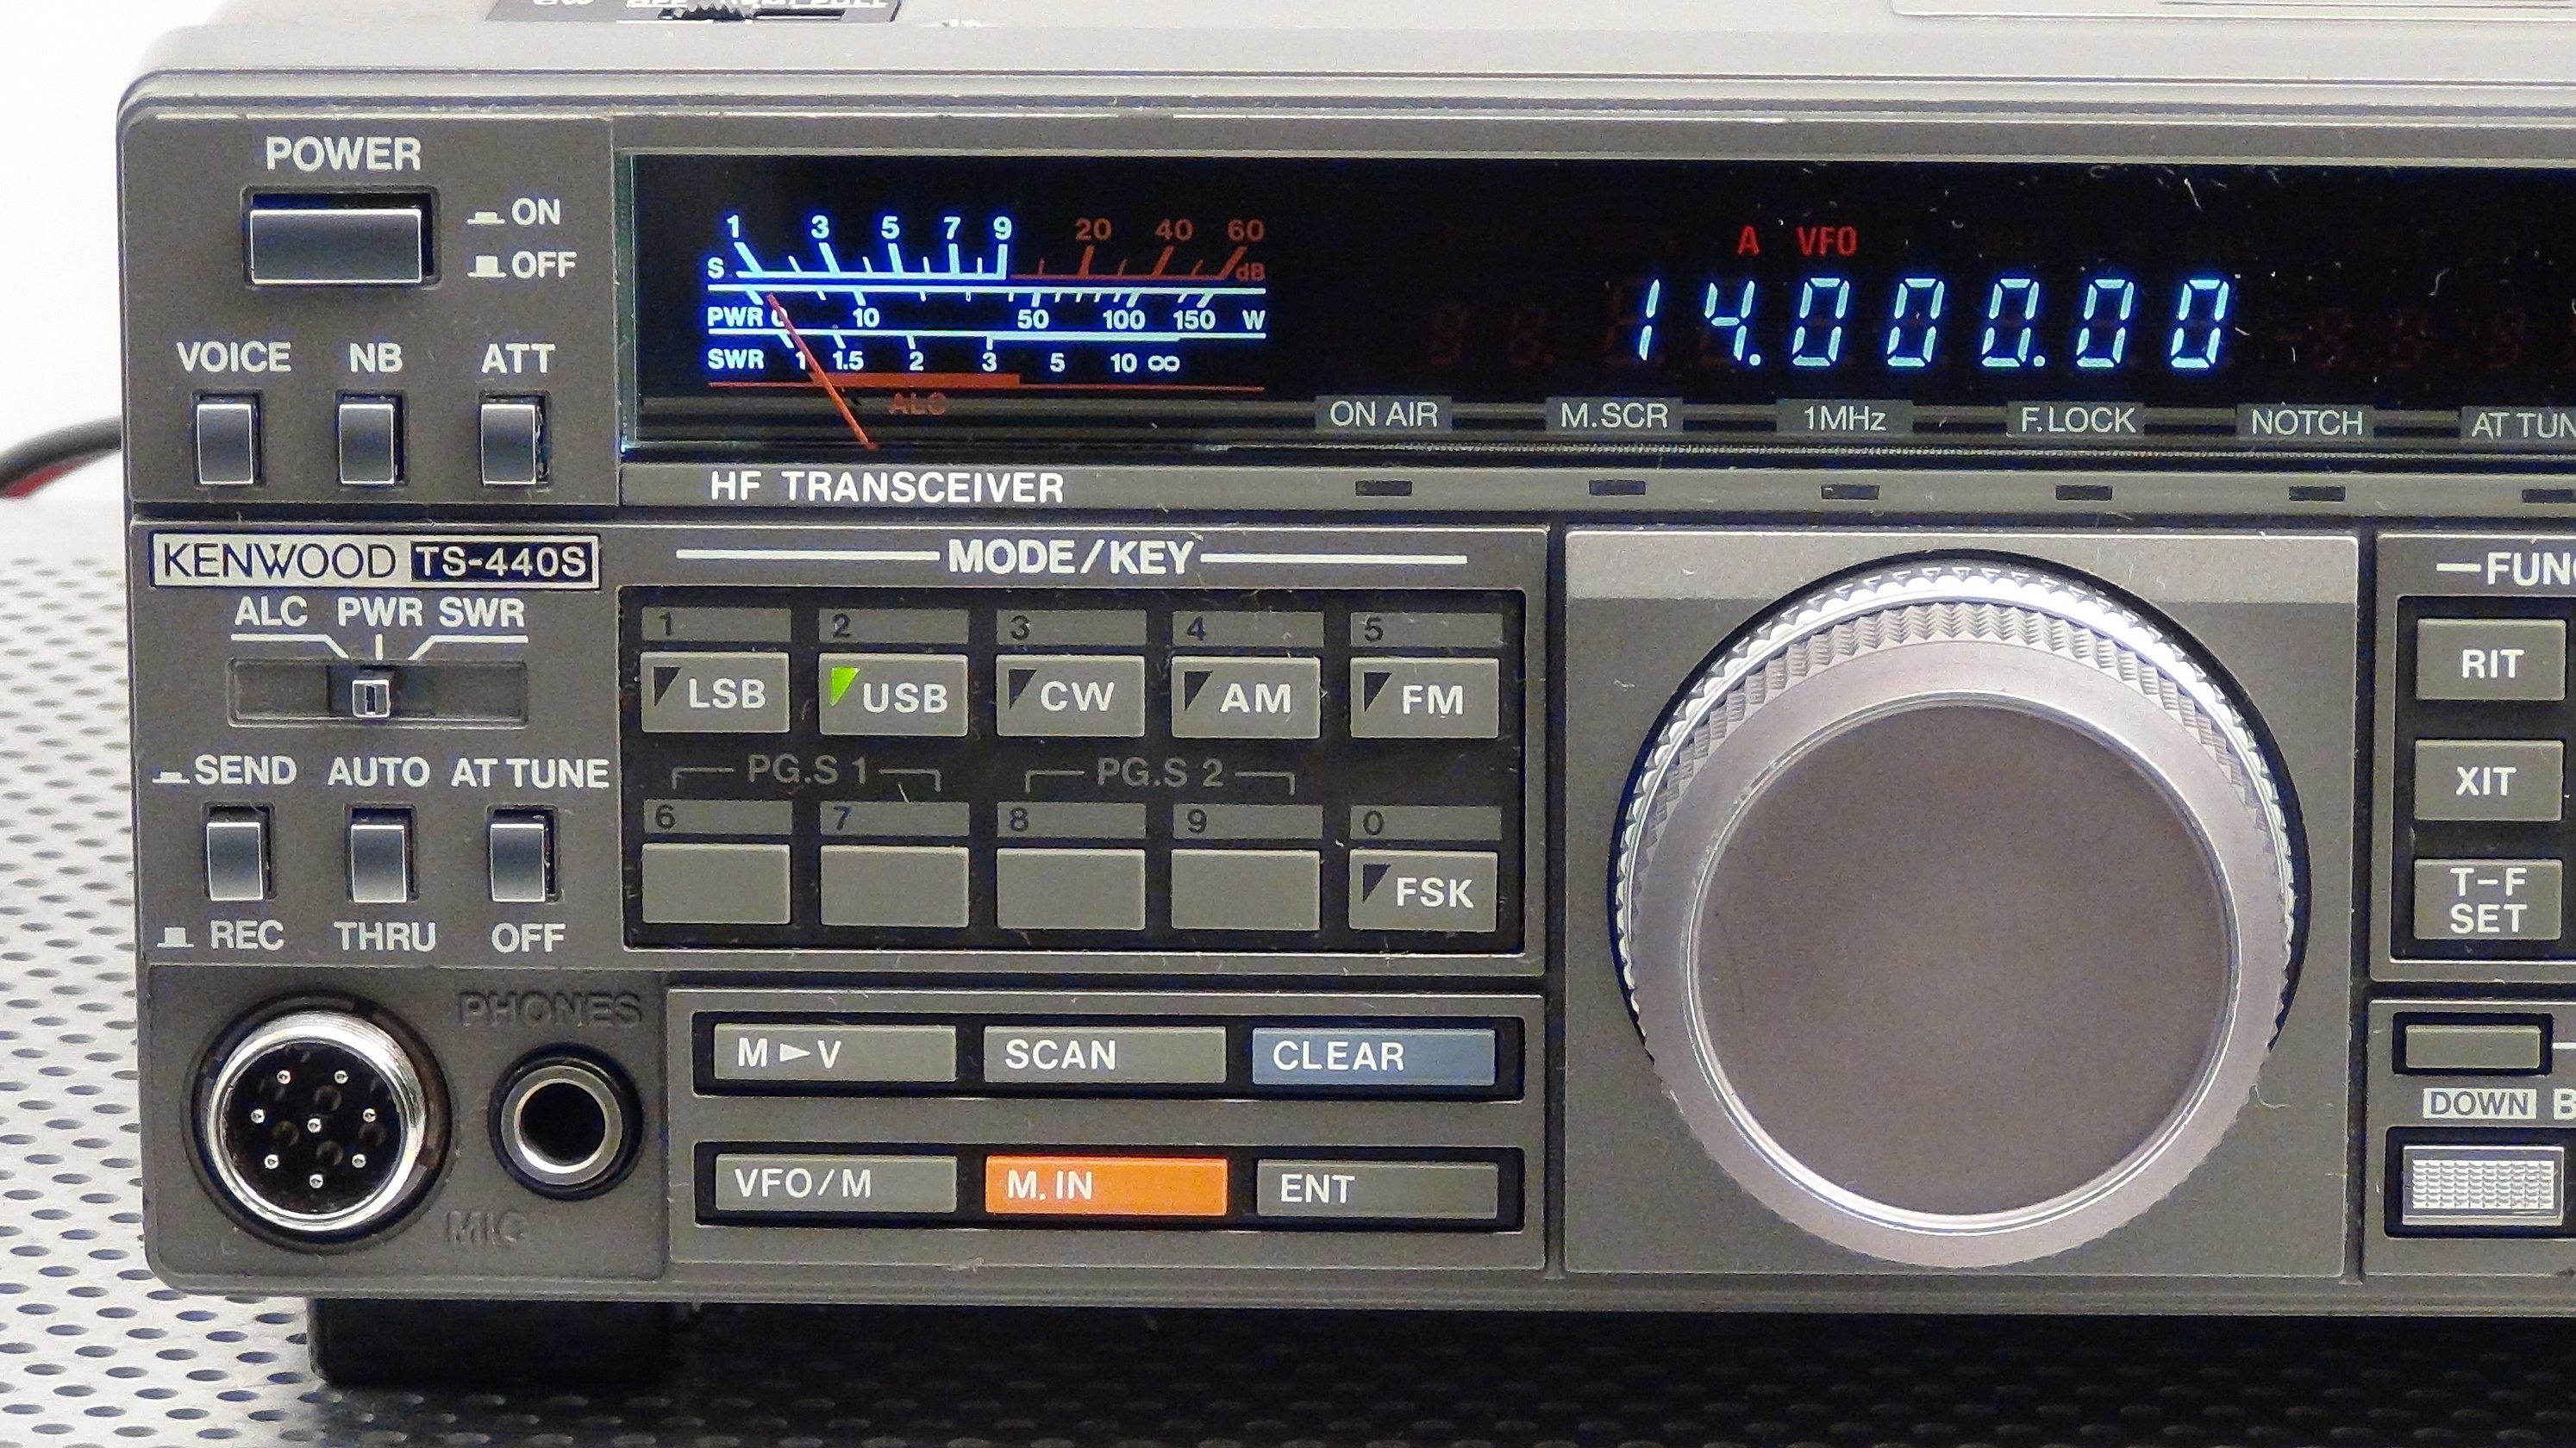 Kenwood TS440s Transceiver / Dot Problem and Keybounce Fixed!